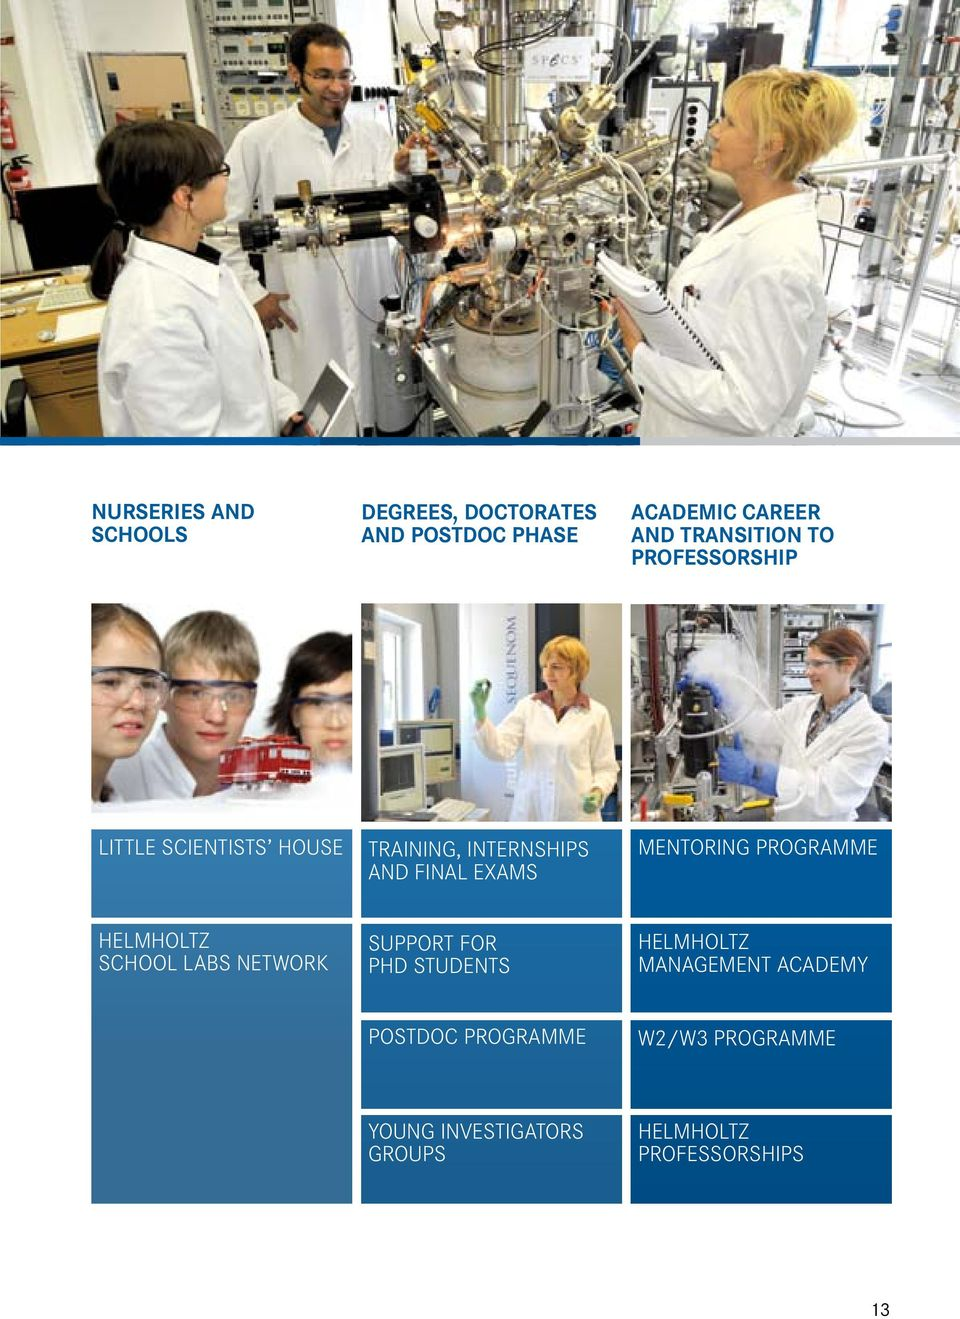 PROGRAMME HELMHOLTZ SCHOOL LABS NETWORK SUPPORT FOR PHD STUDENTS HELMHOLTZ MANAGEMENT